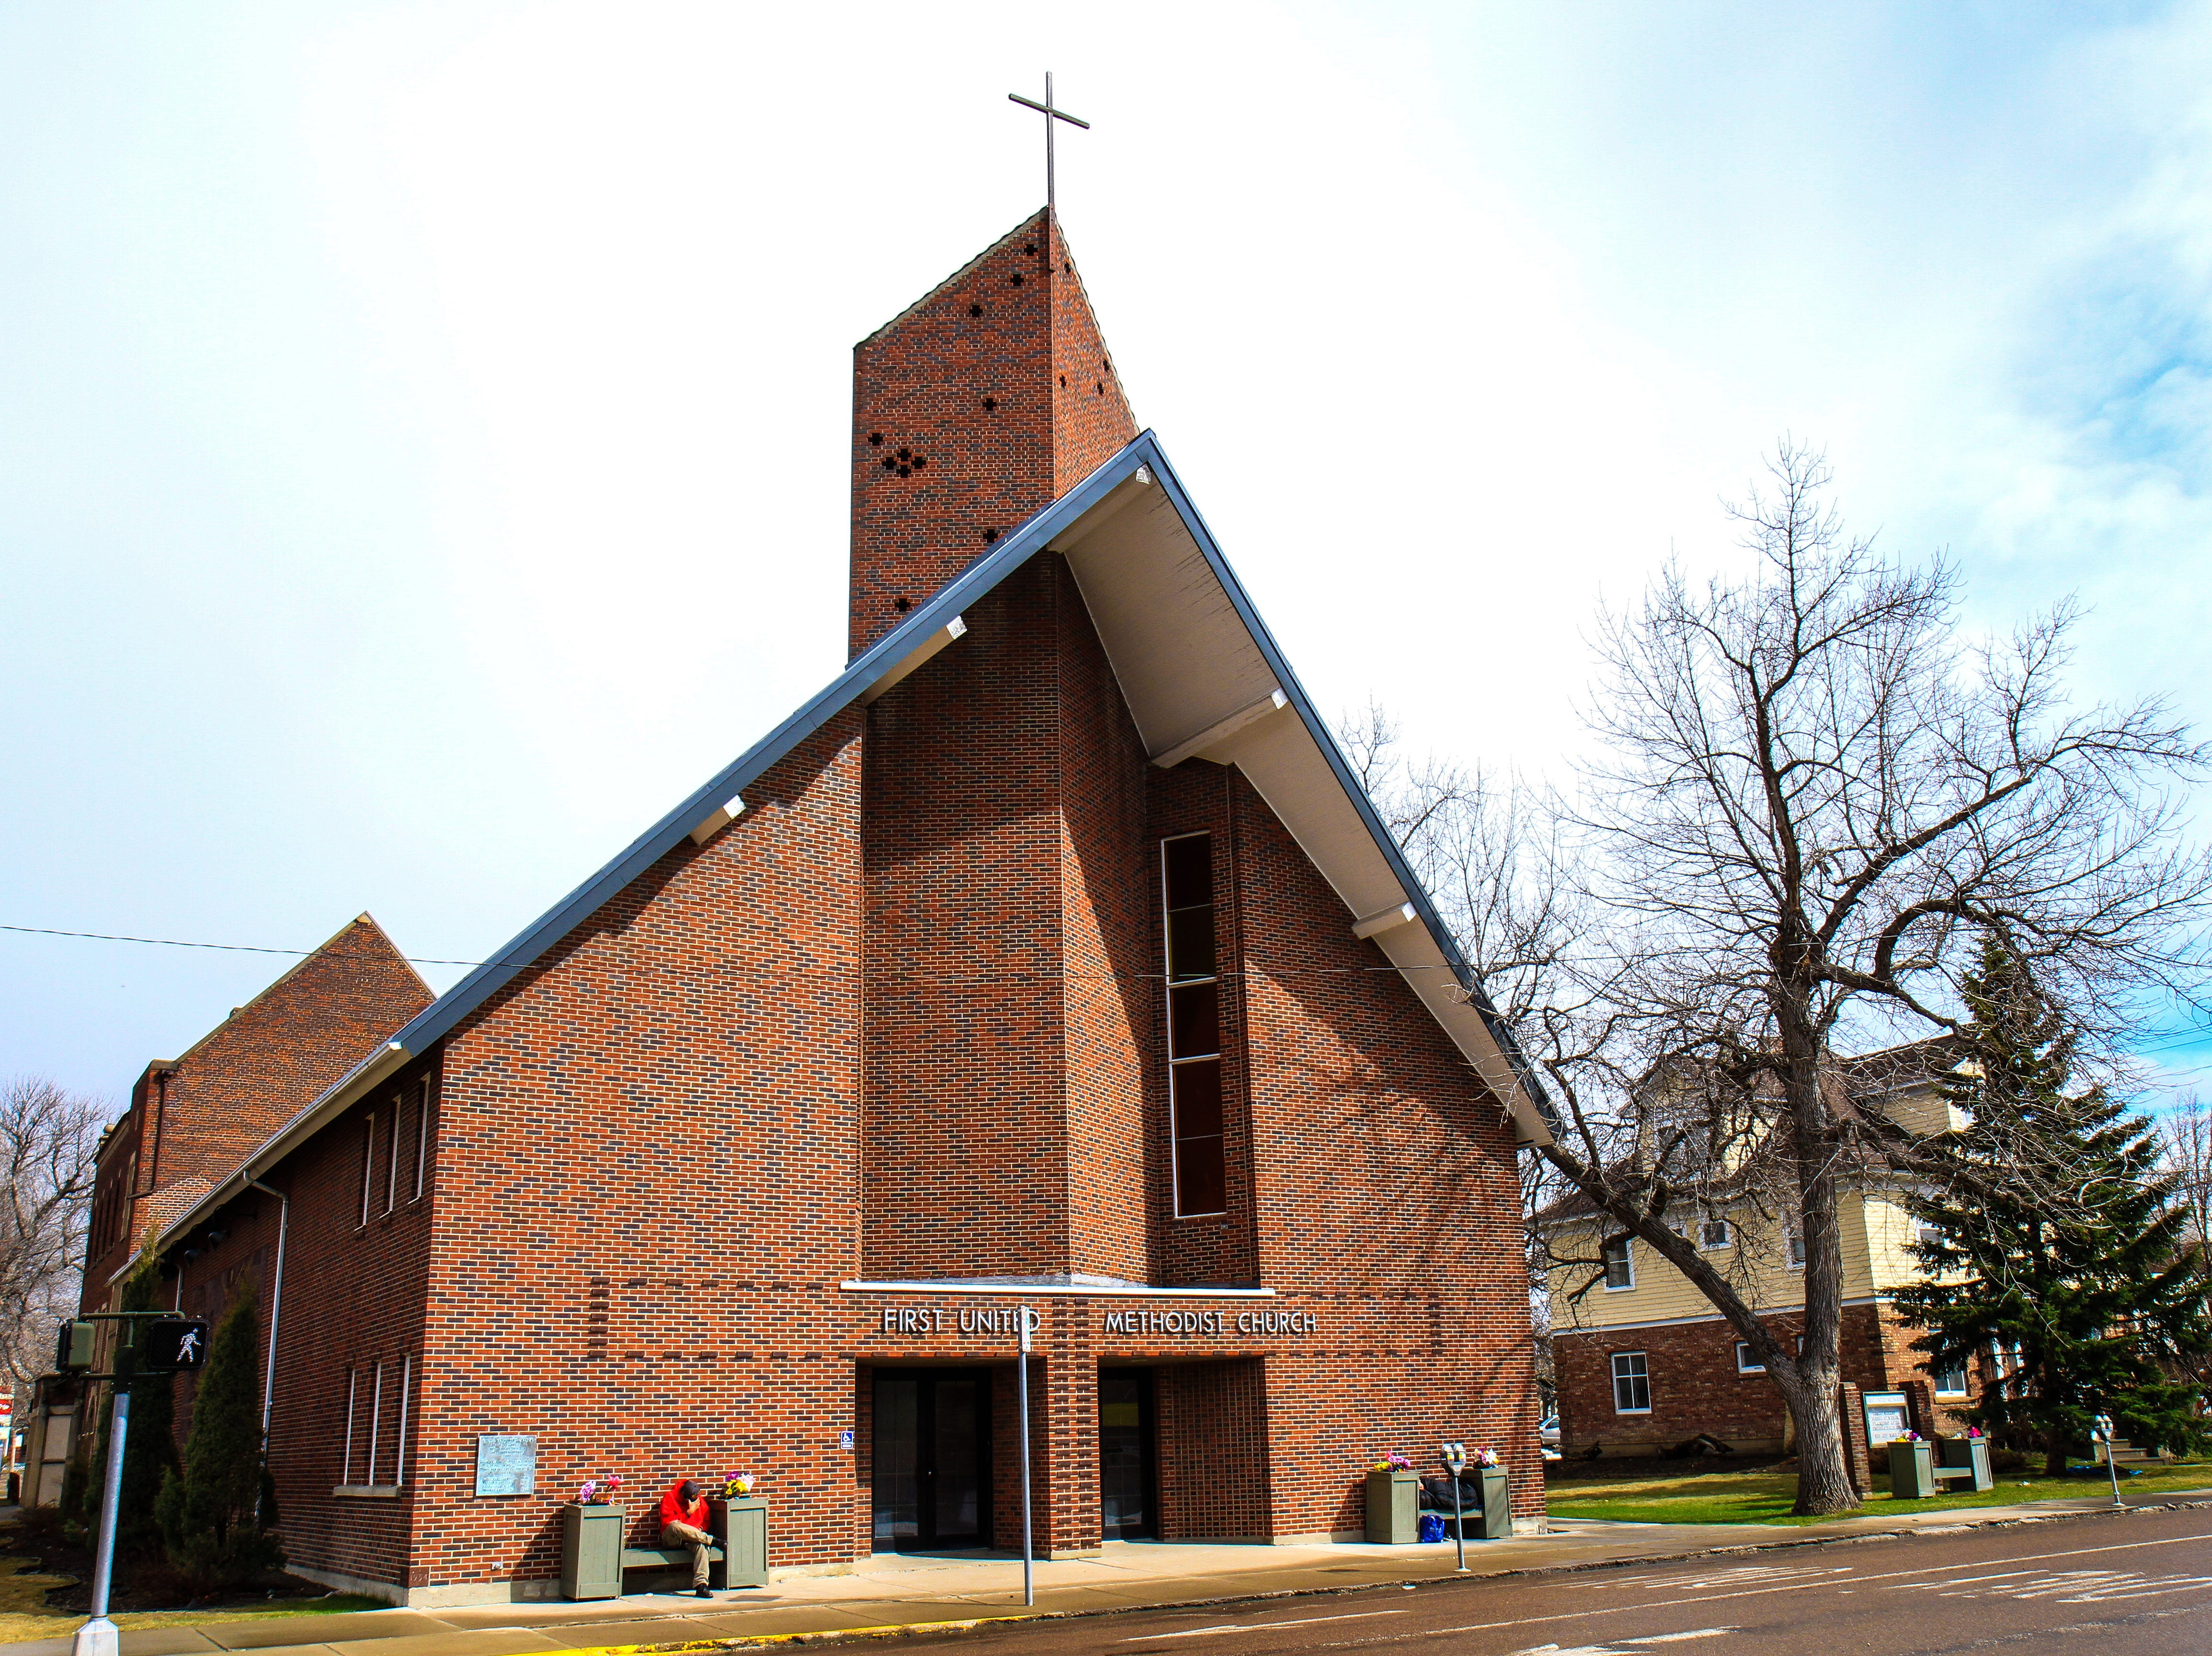 First United Methodist Church, downtown Great Falls